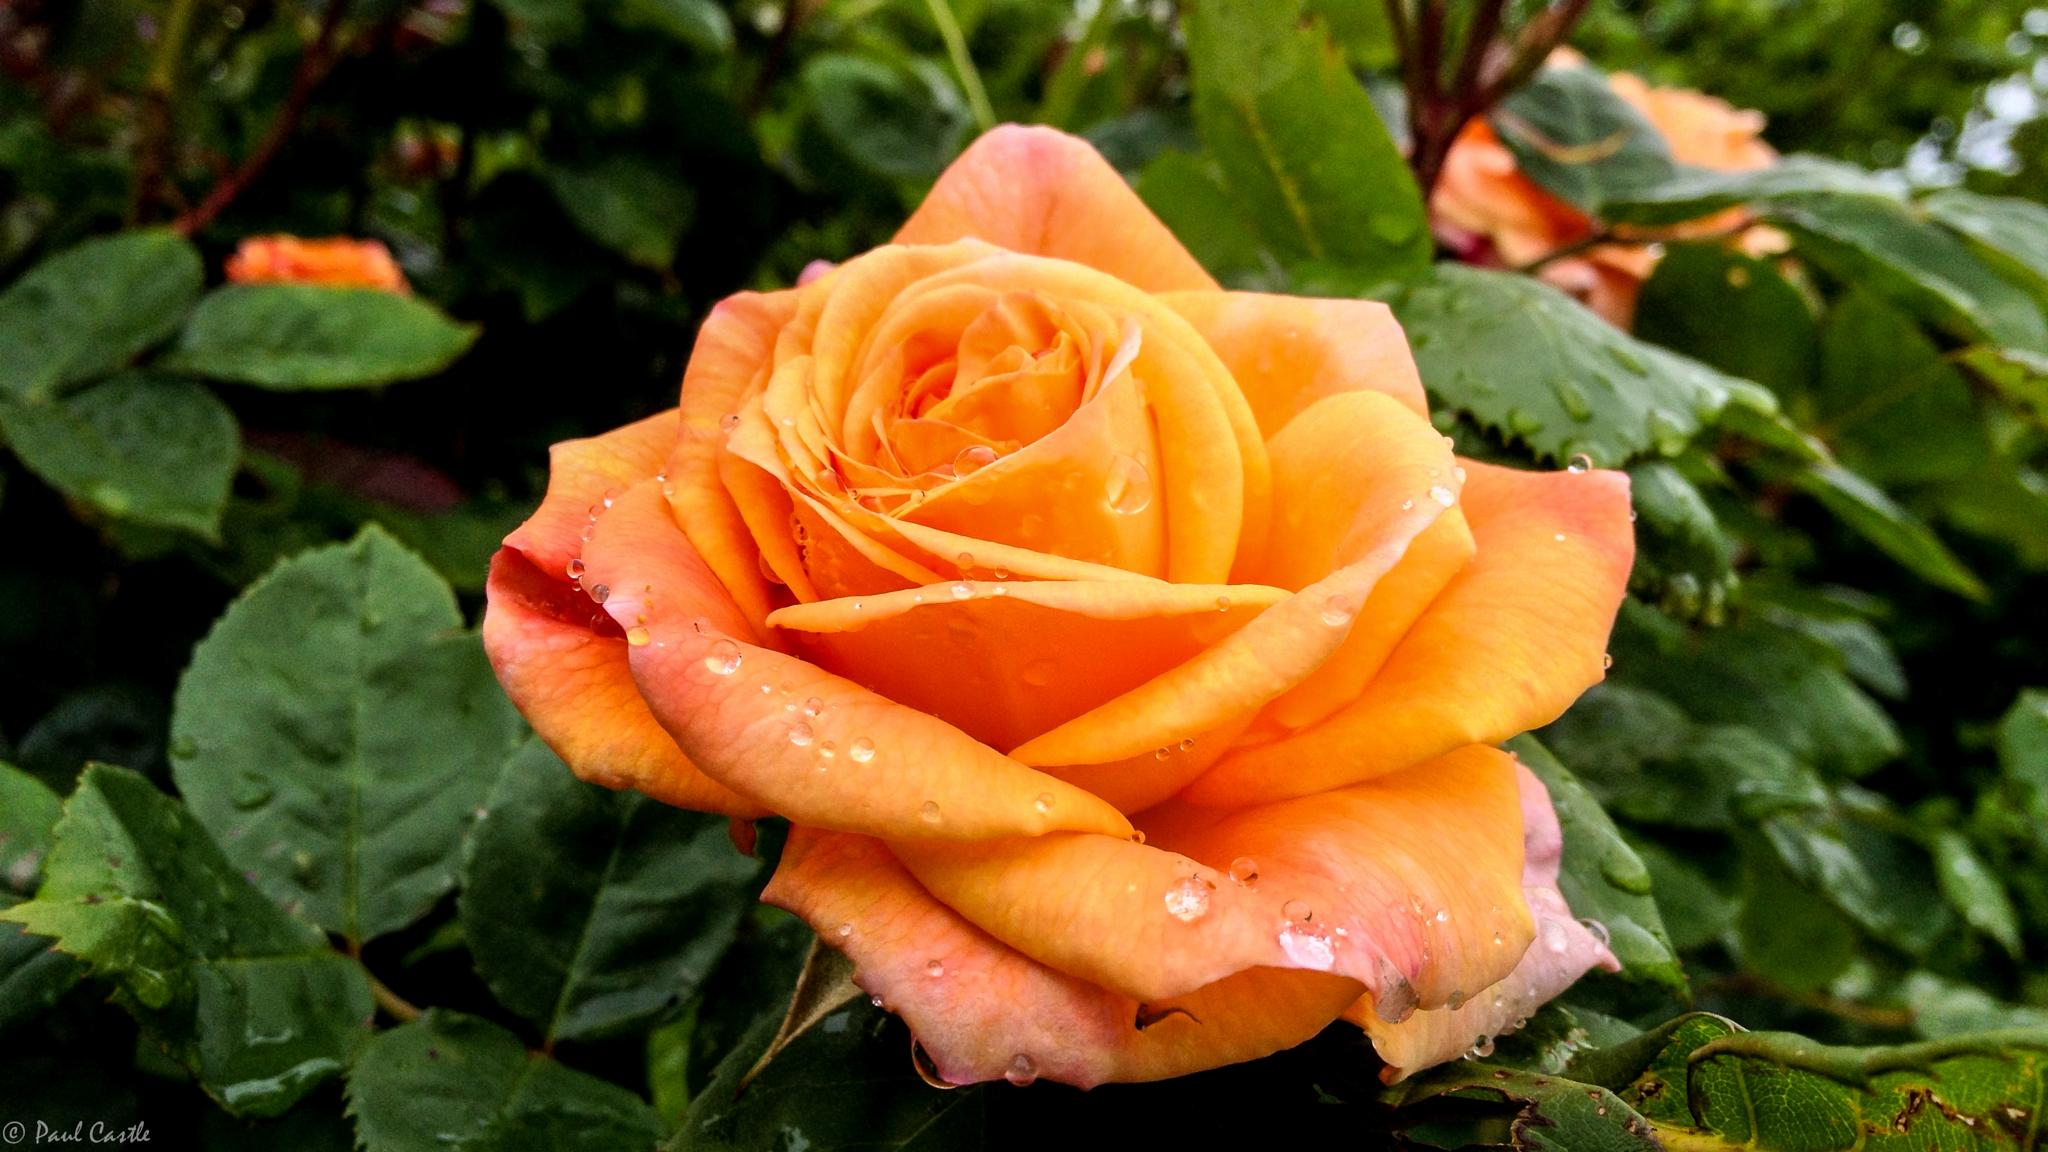 Raindrops on Roses by Paul Castle